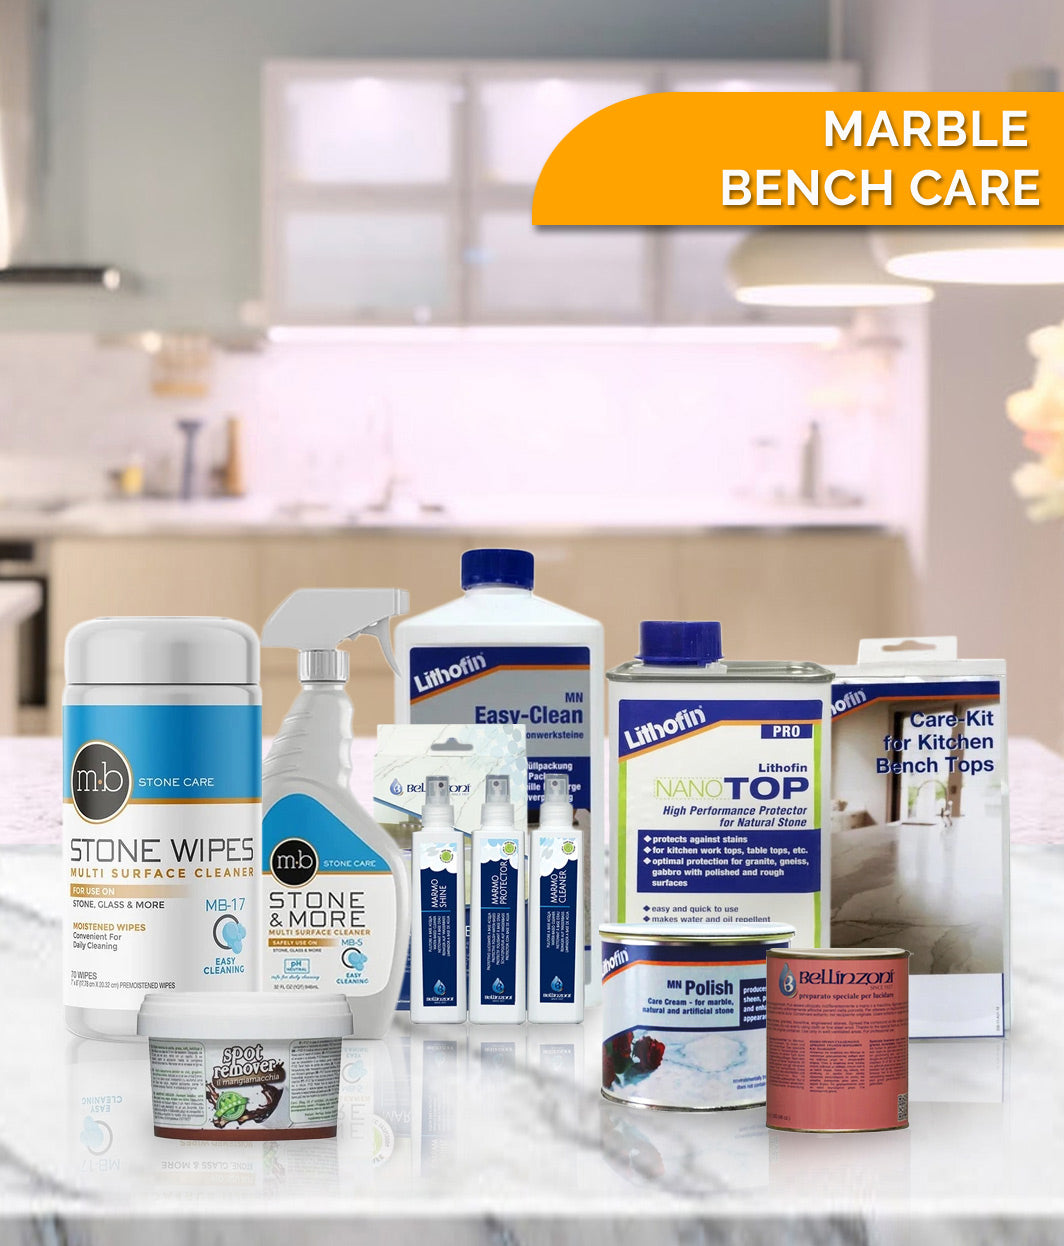 MARBLE BENCH CARE & MAINTENANCE